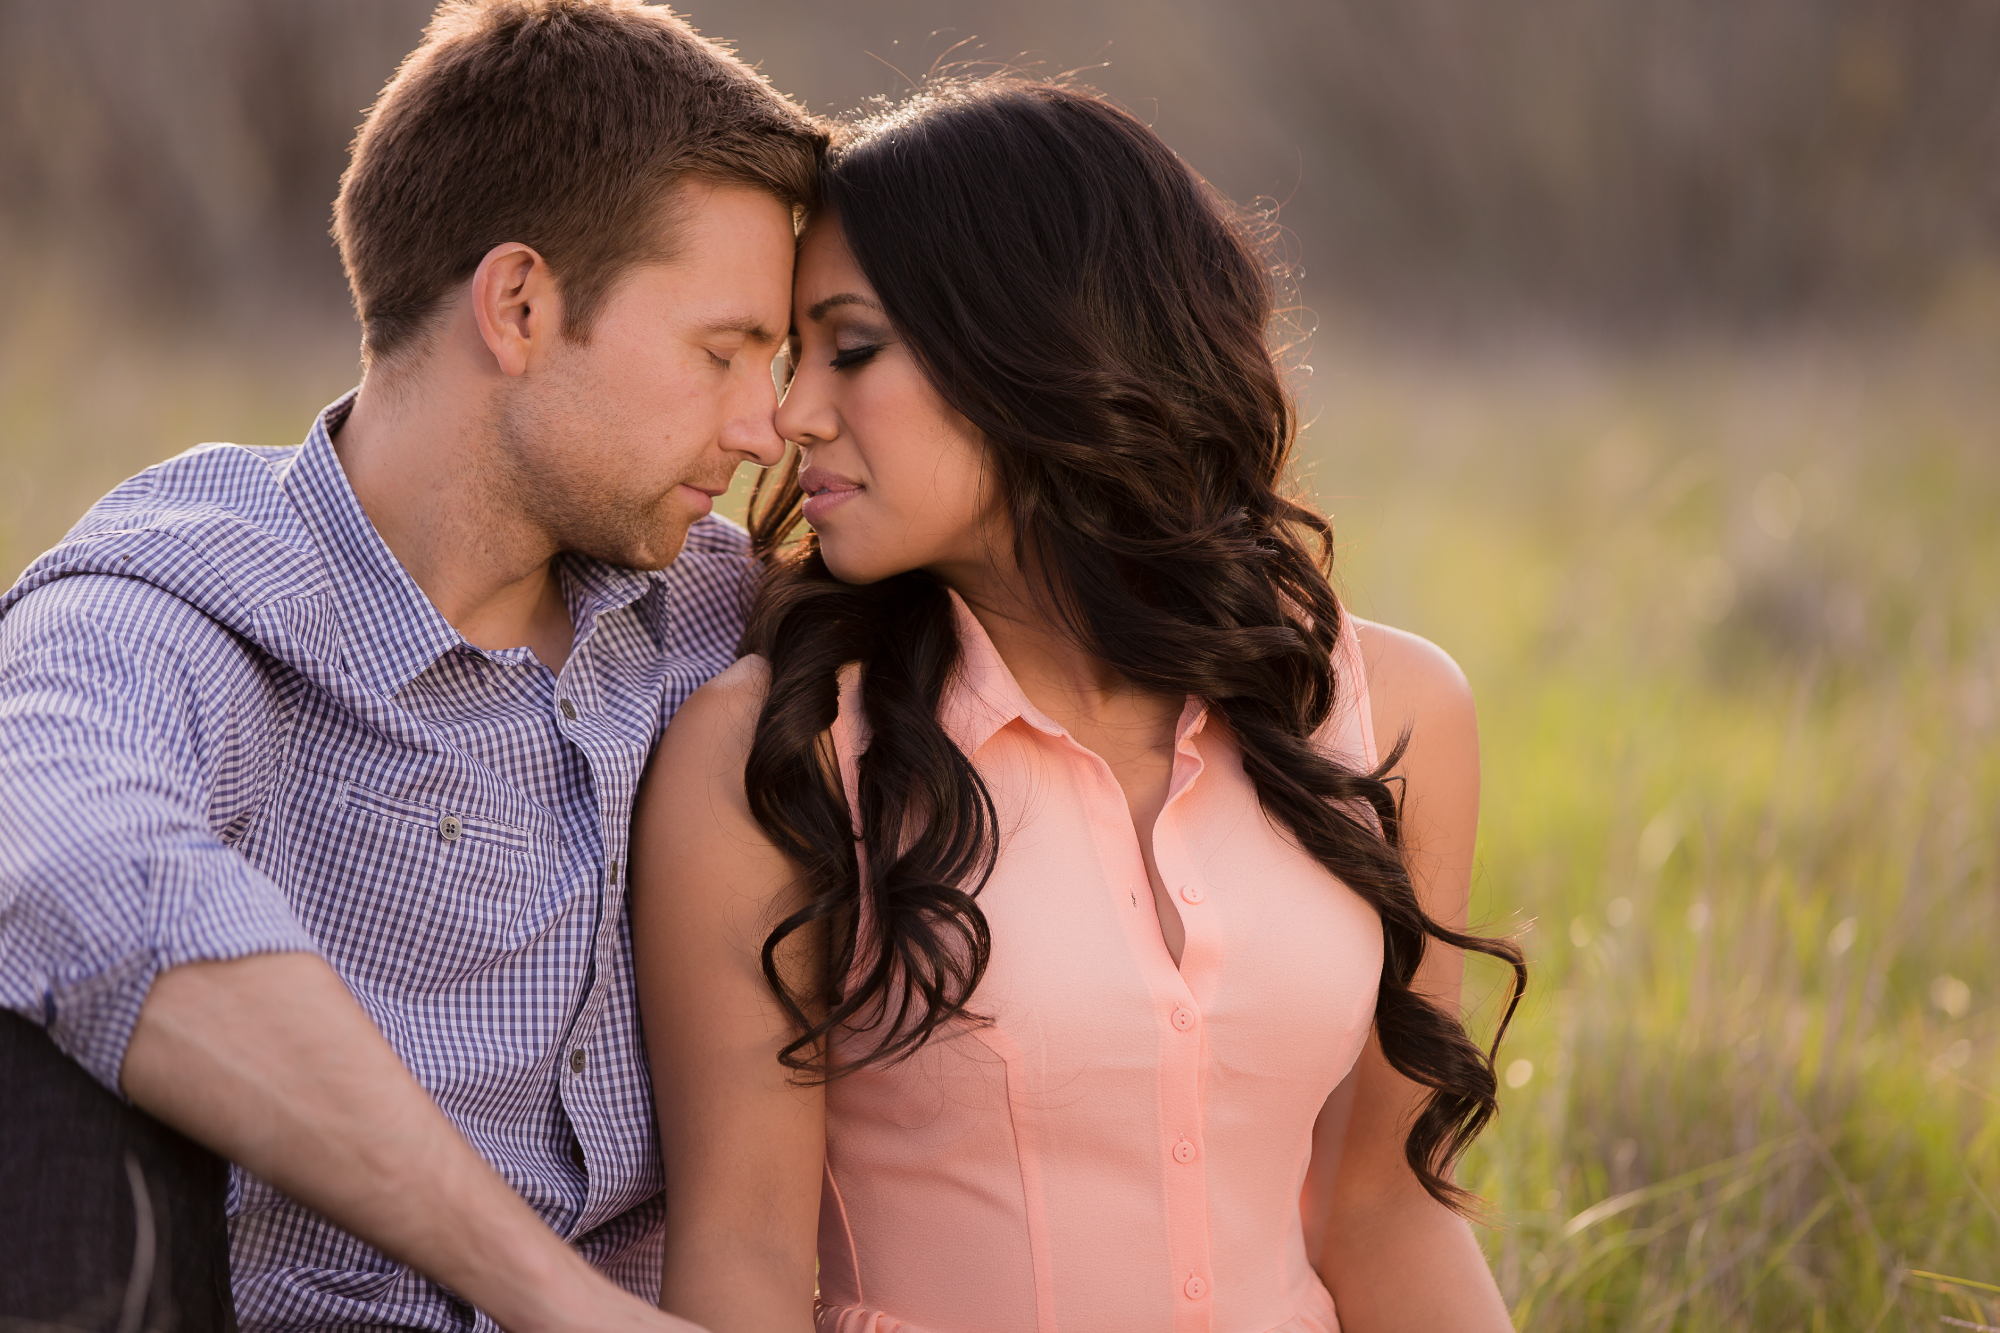 use natural light for outdoor portraits